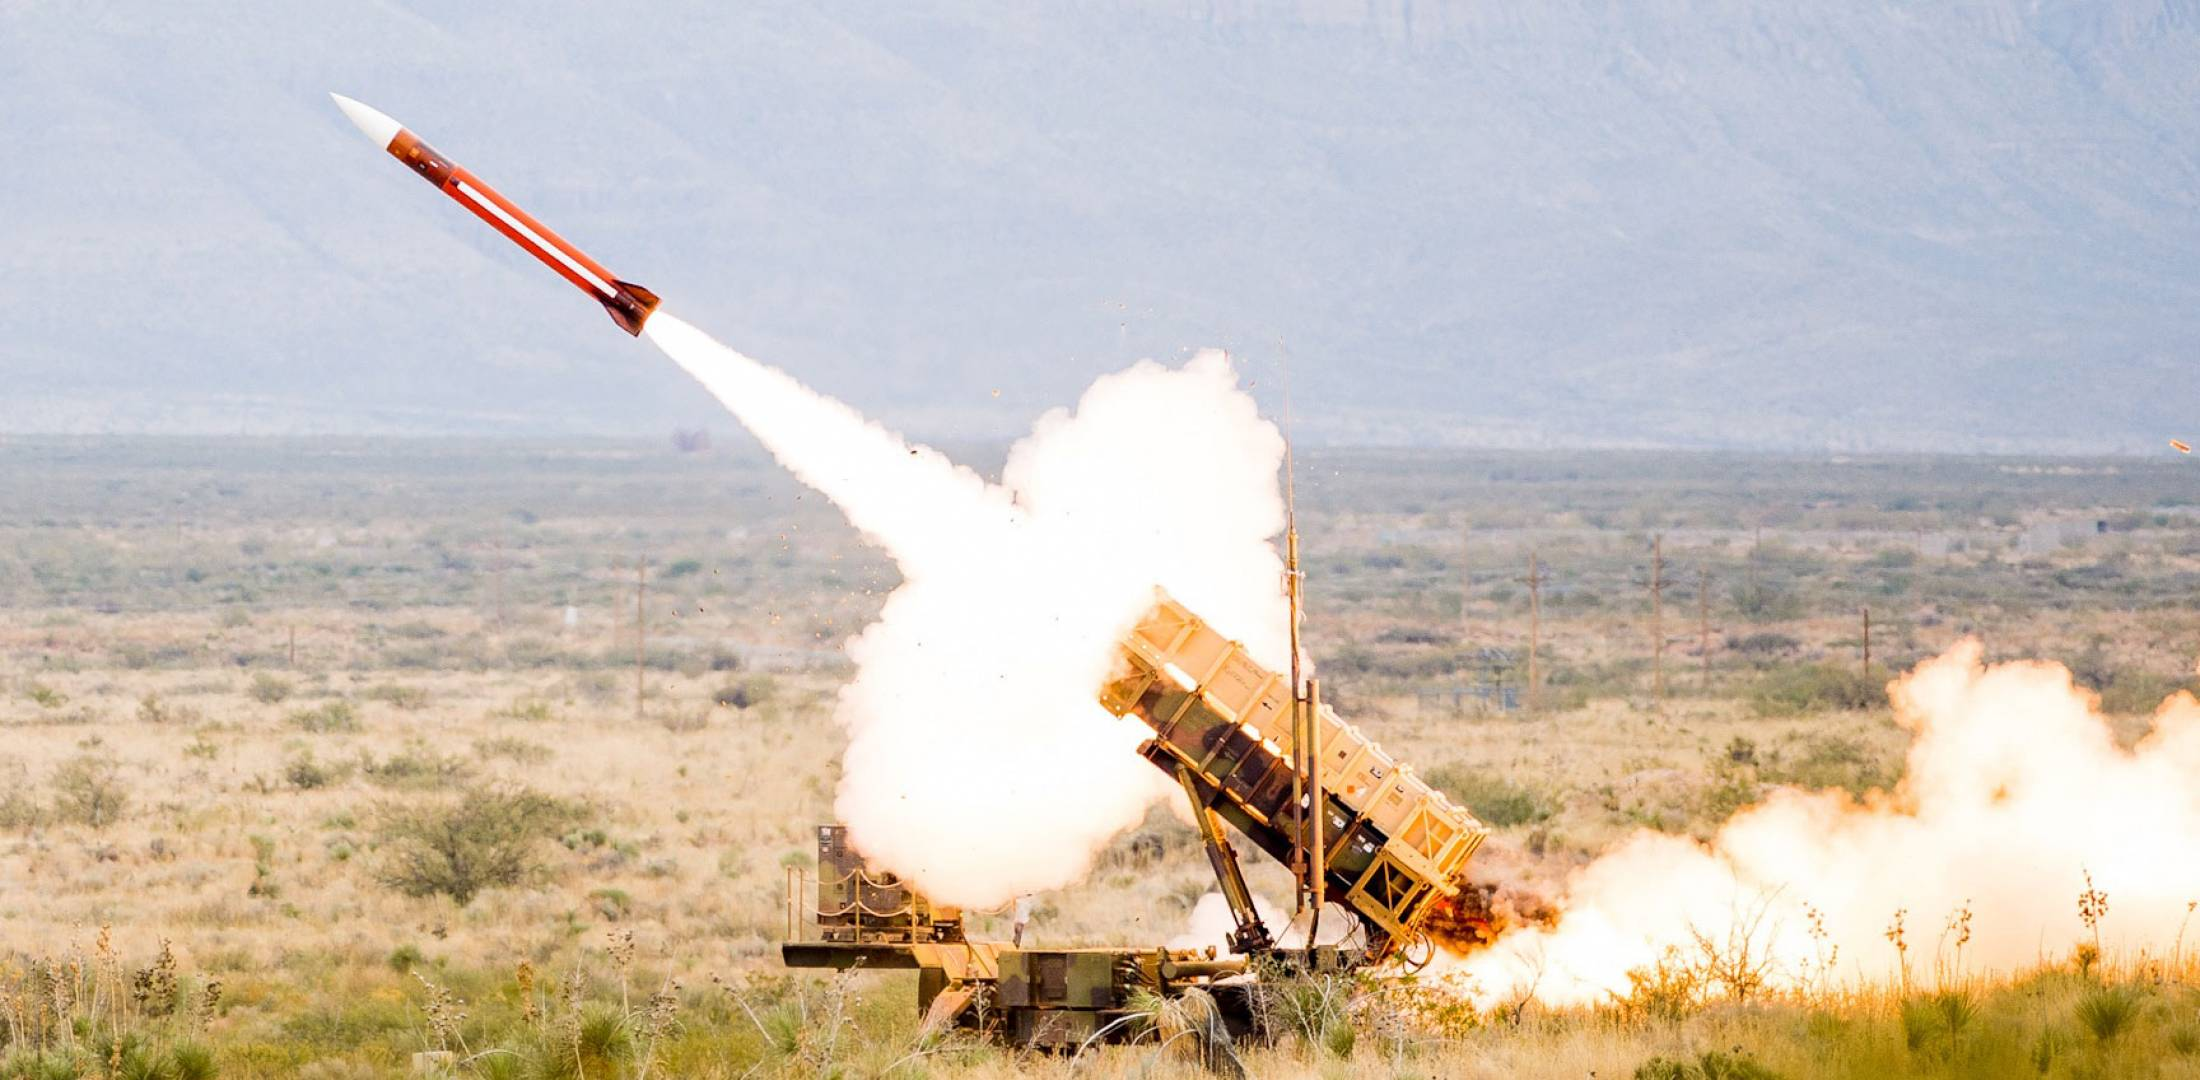 The Patriot missile system